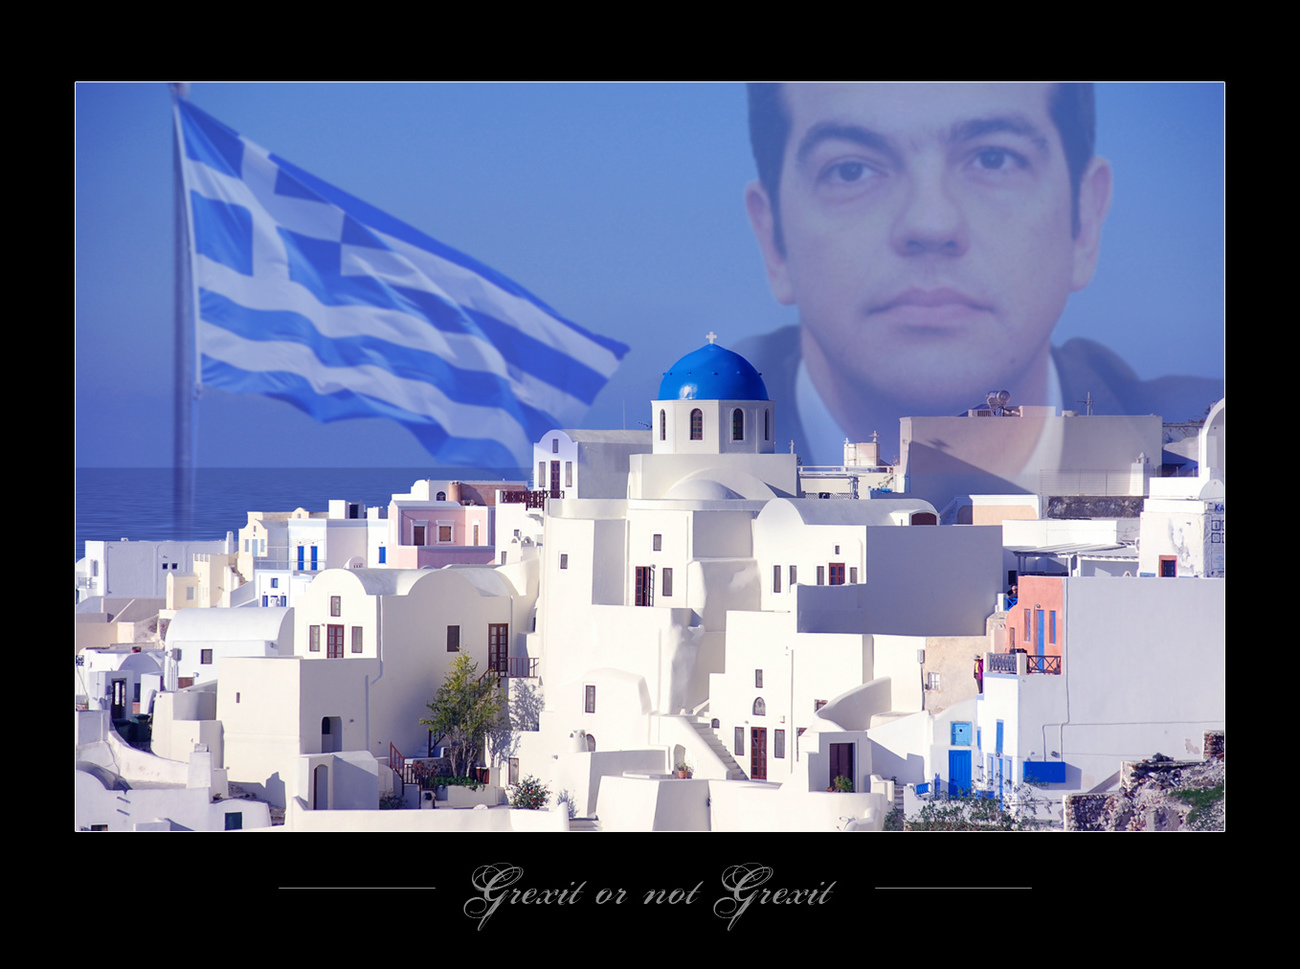 ~ Grexit or not grexit, the greek dilemma ~